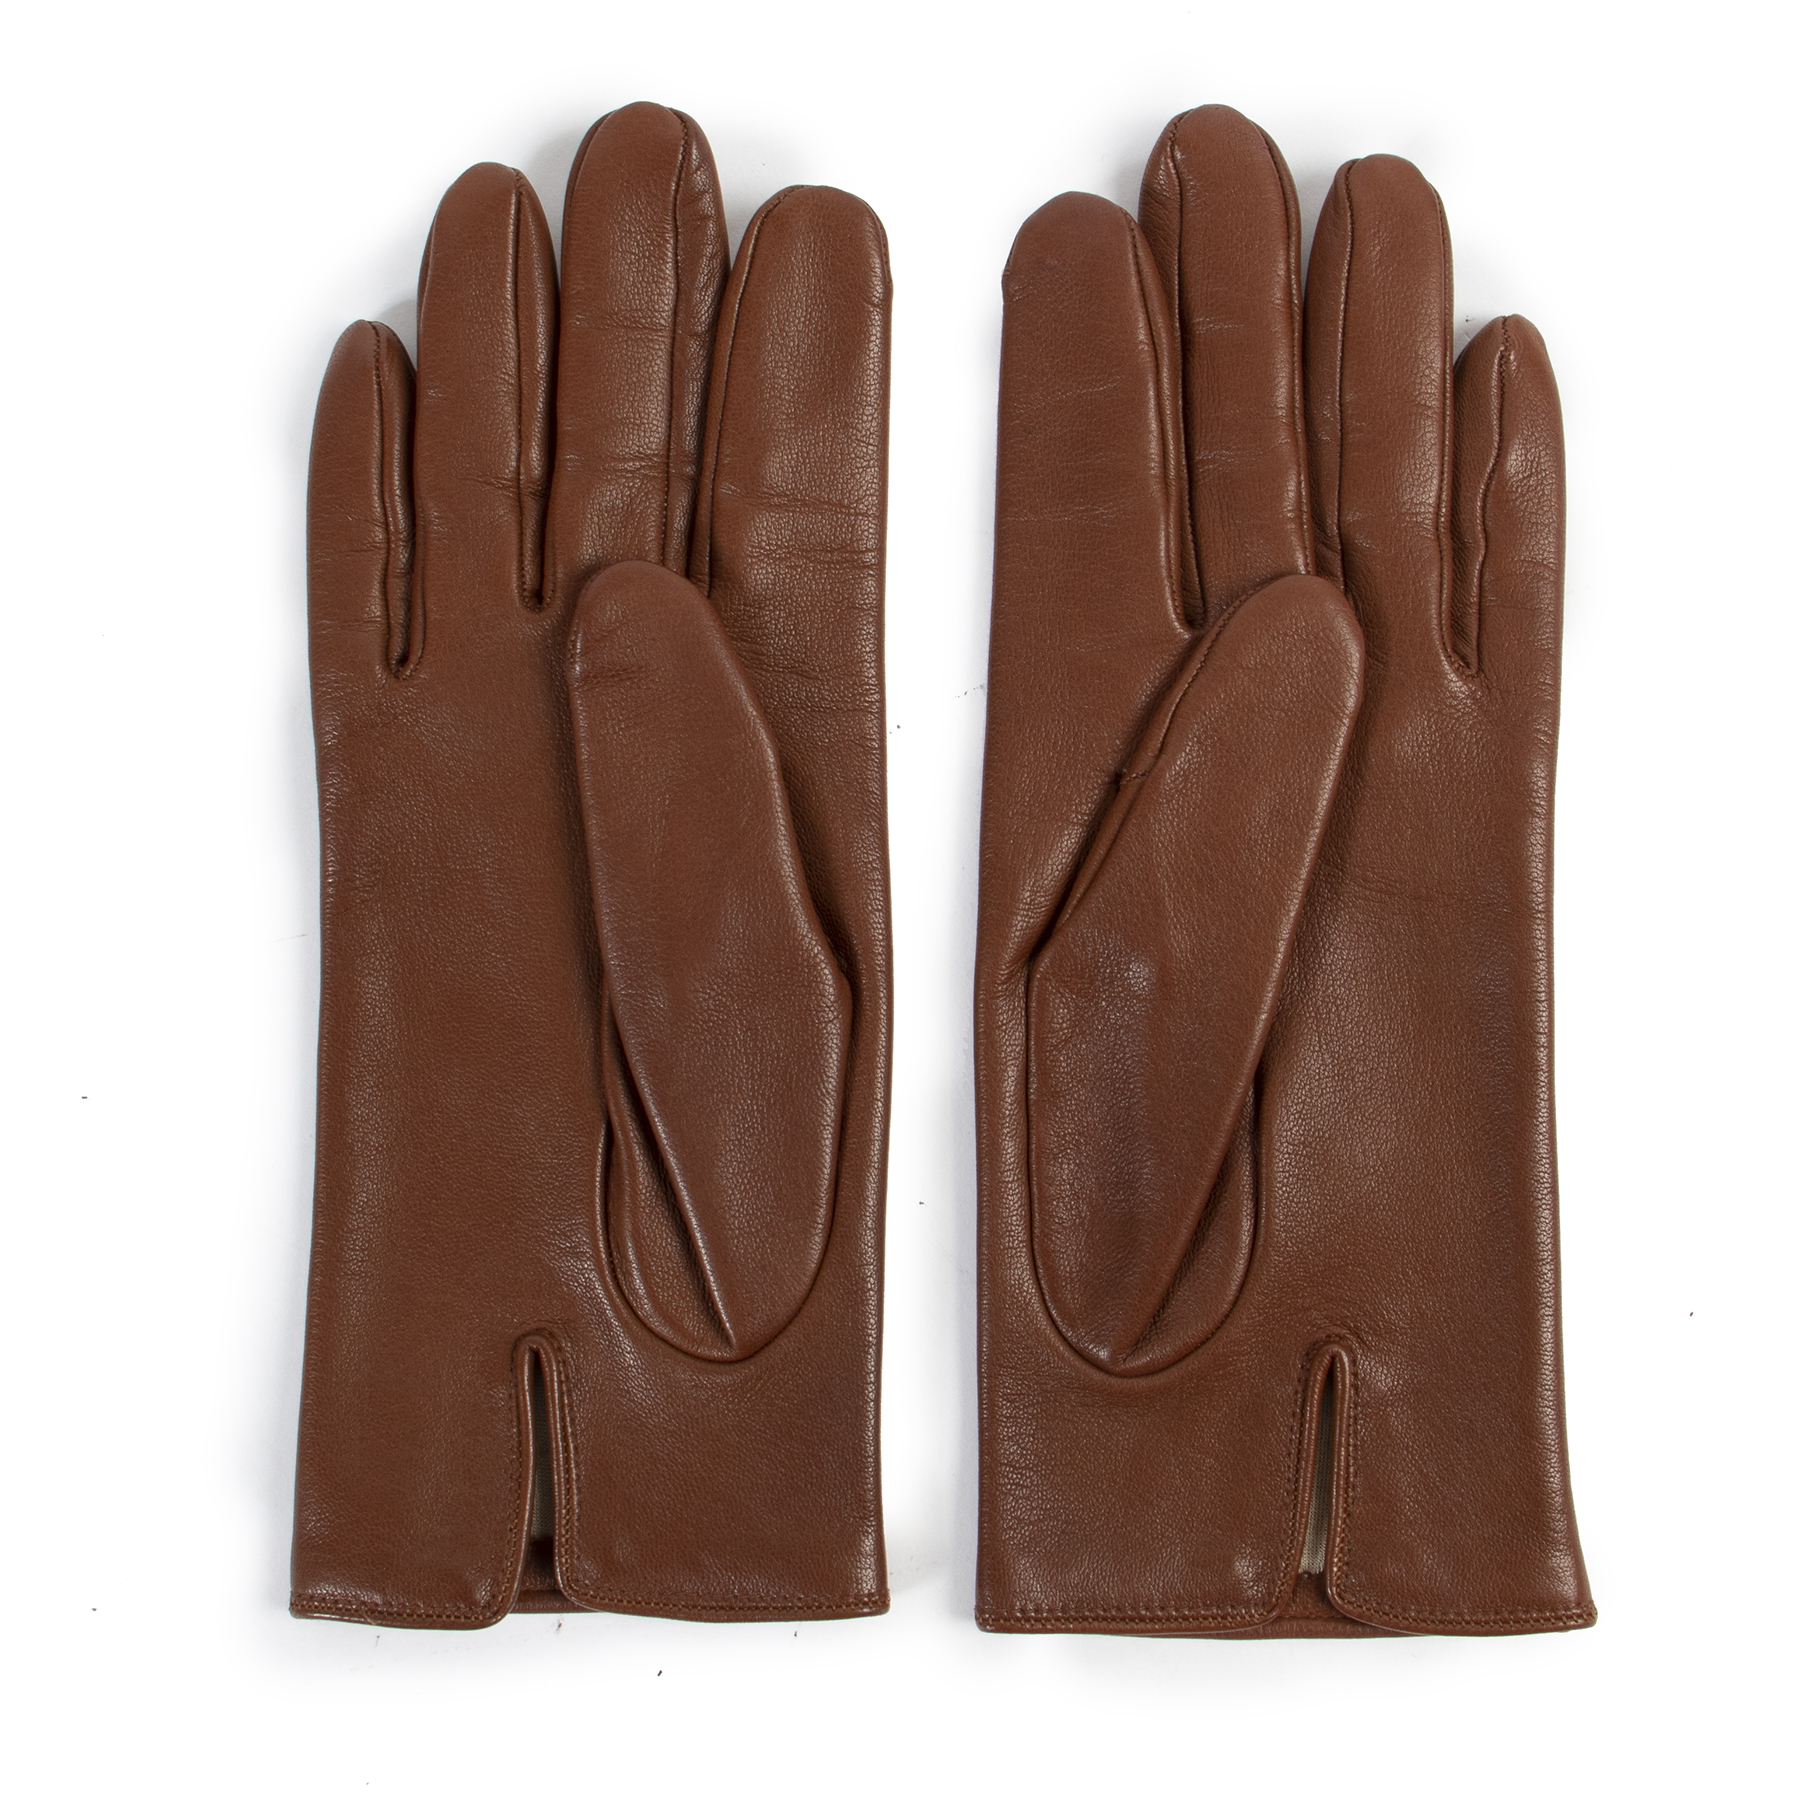 Celine Vintage Brown Leather Gloves available for the best price at Labellov secondhand luxury